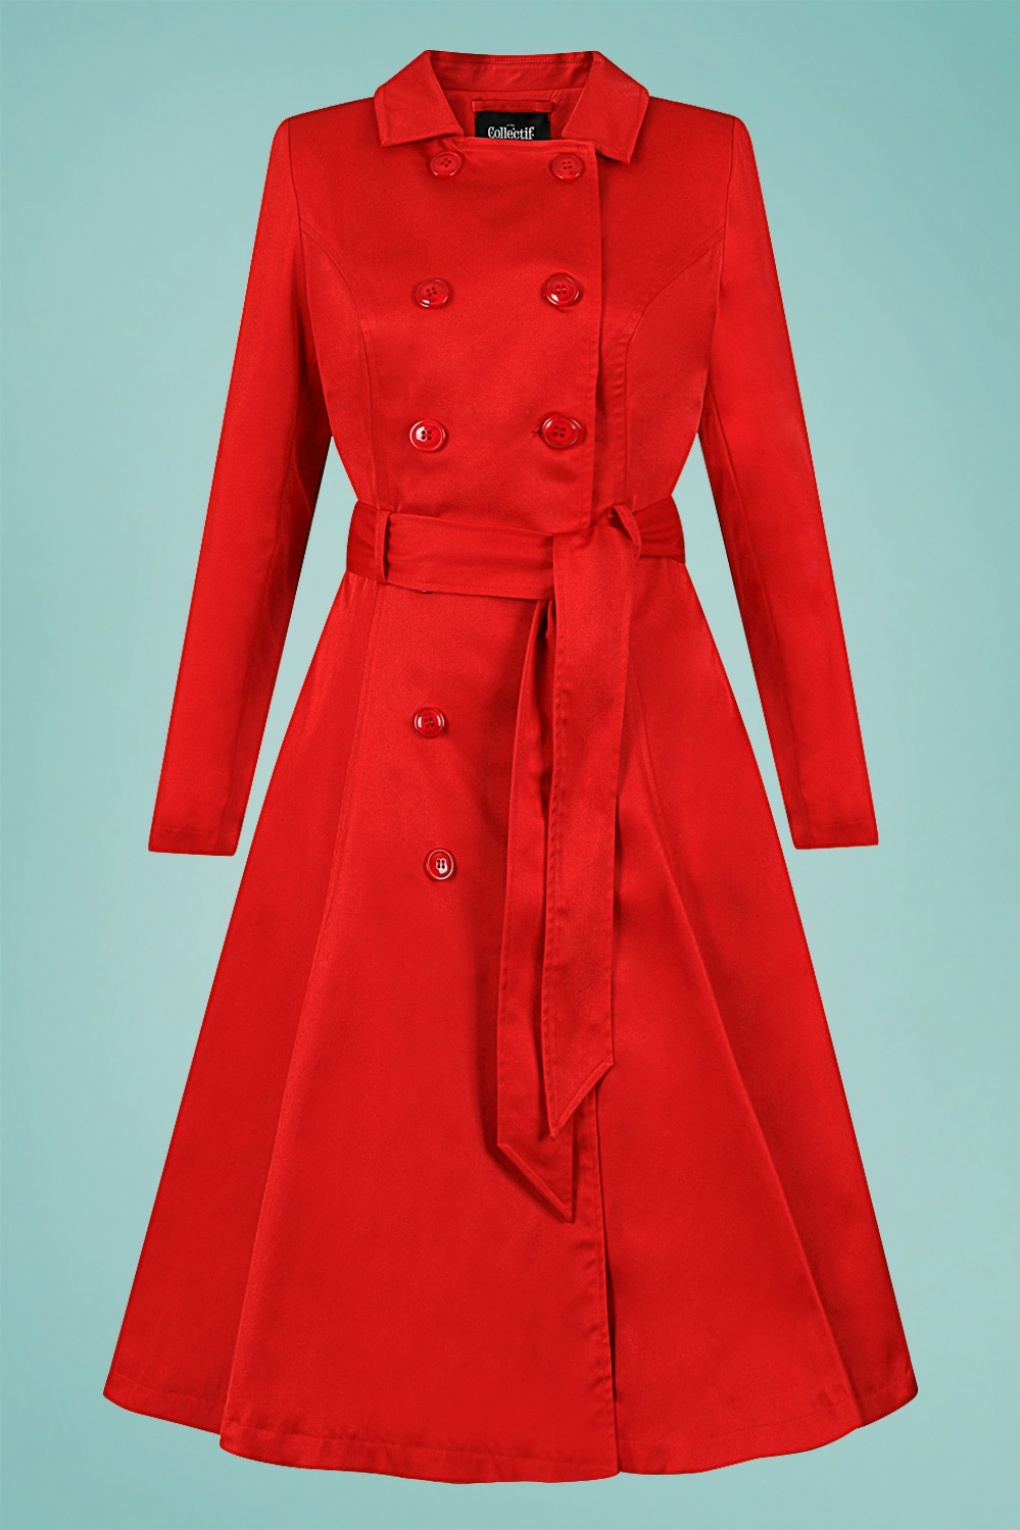 Vintage Coats & Jackets | Retro Coats and Jackets 40s Korrina Swing Trench Coat in Red £19.95 AT vintagedancer.com